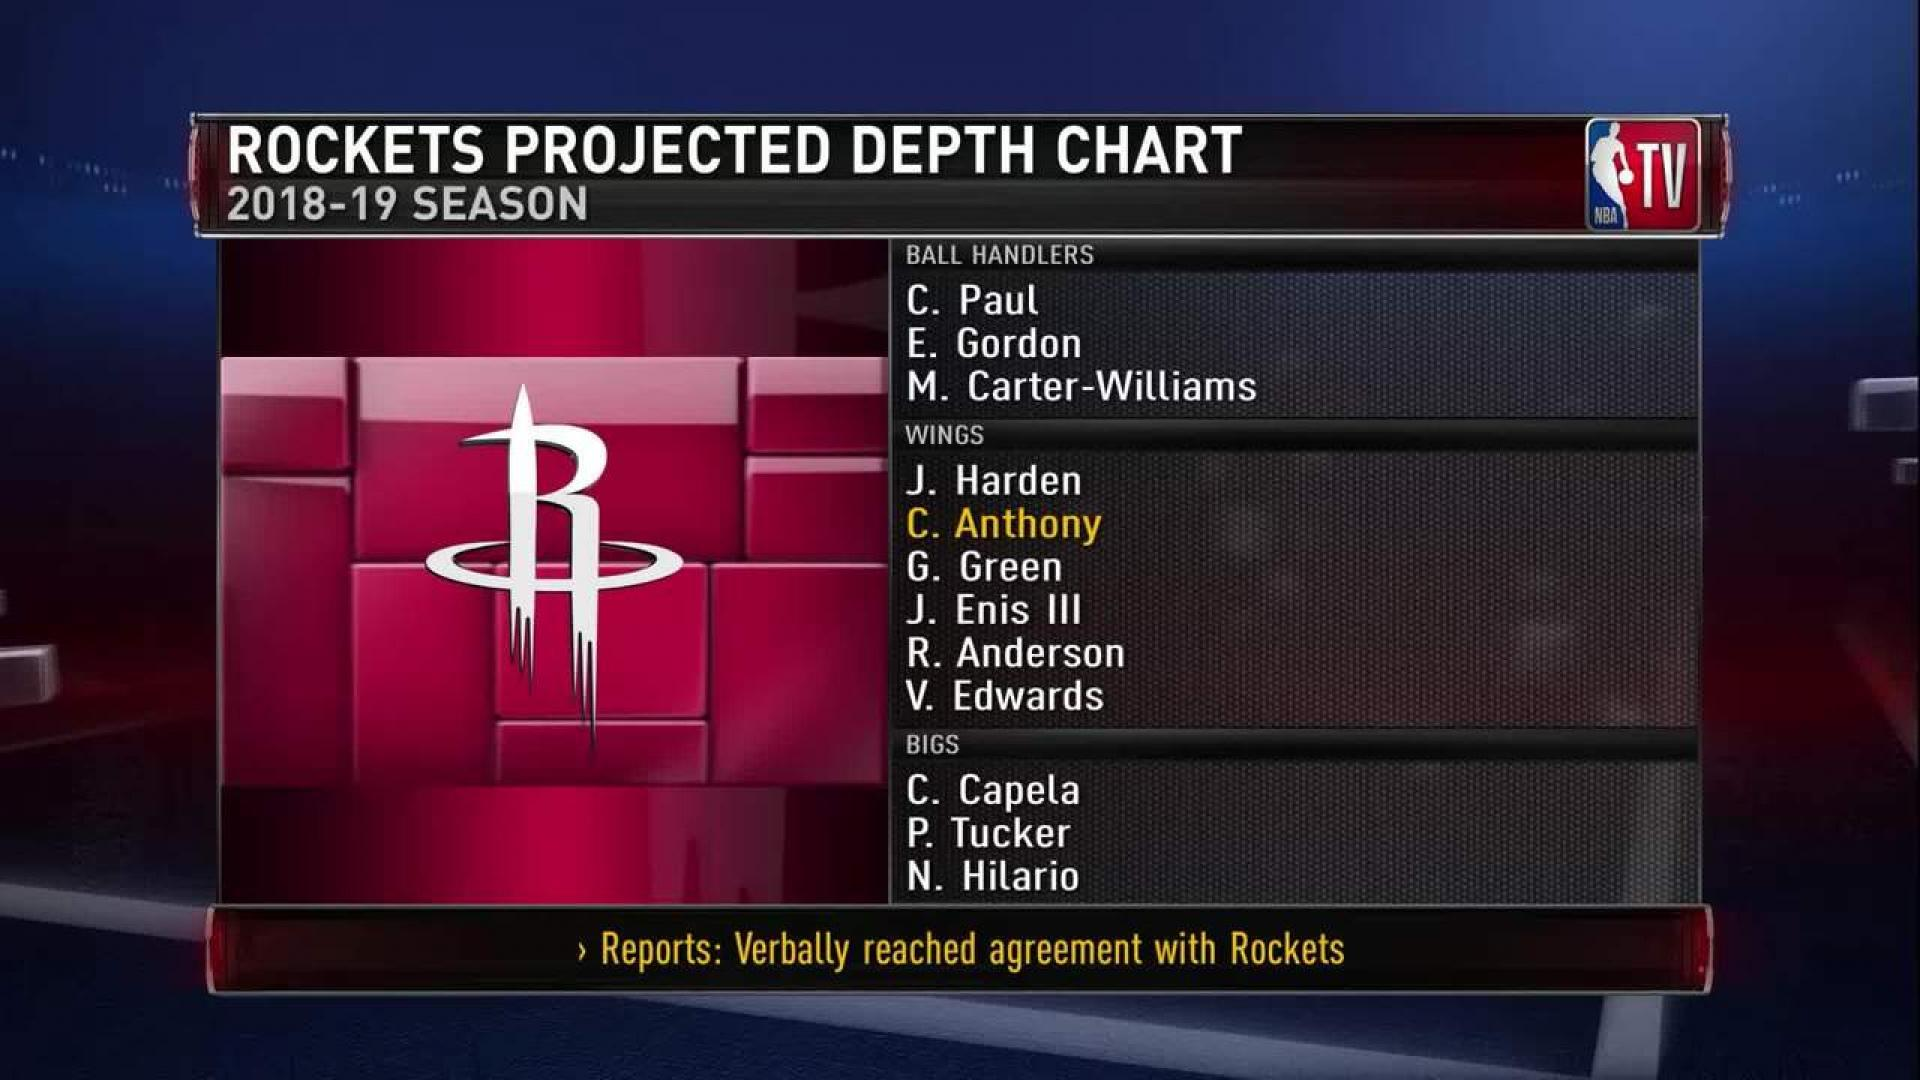 Rockets Projected Depth Chart